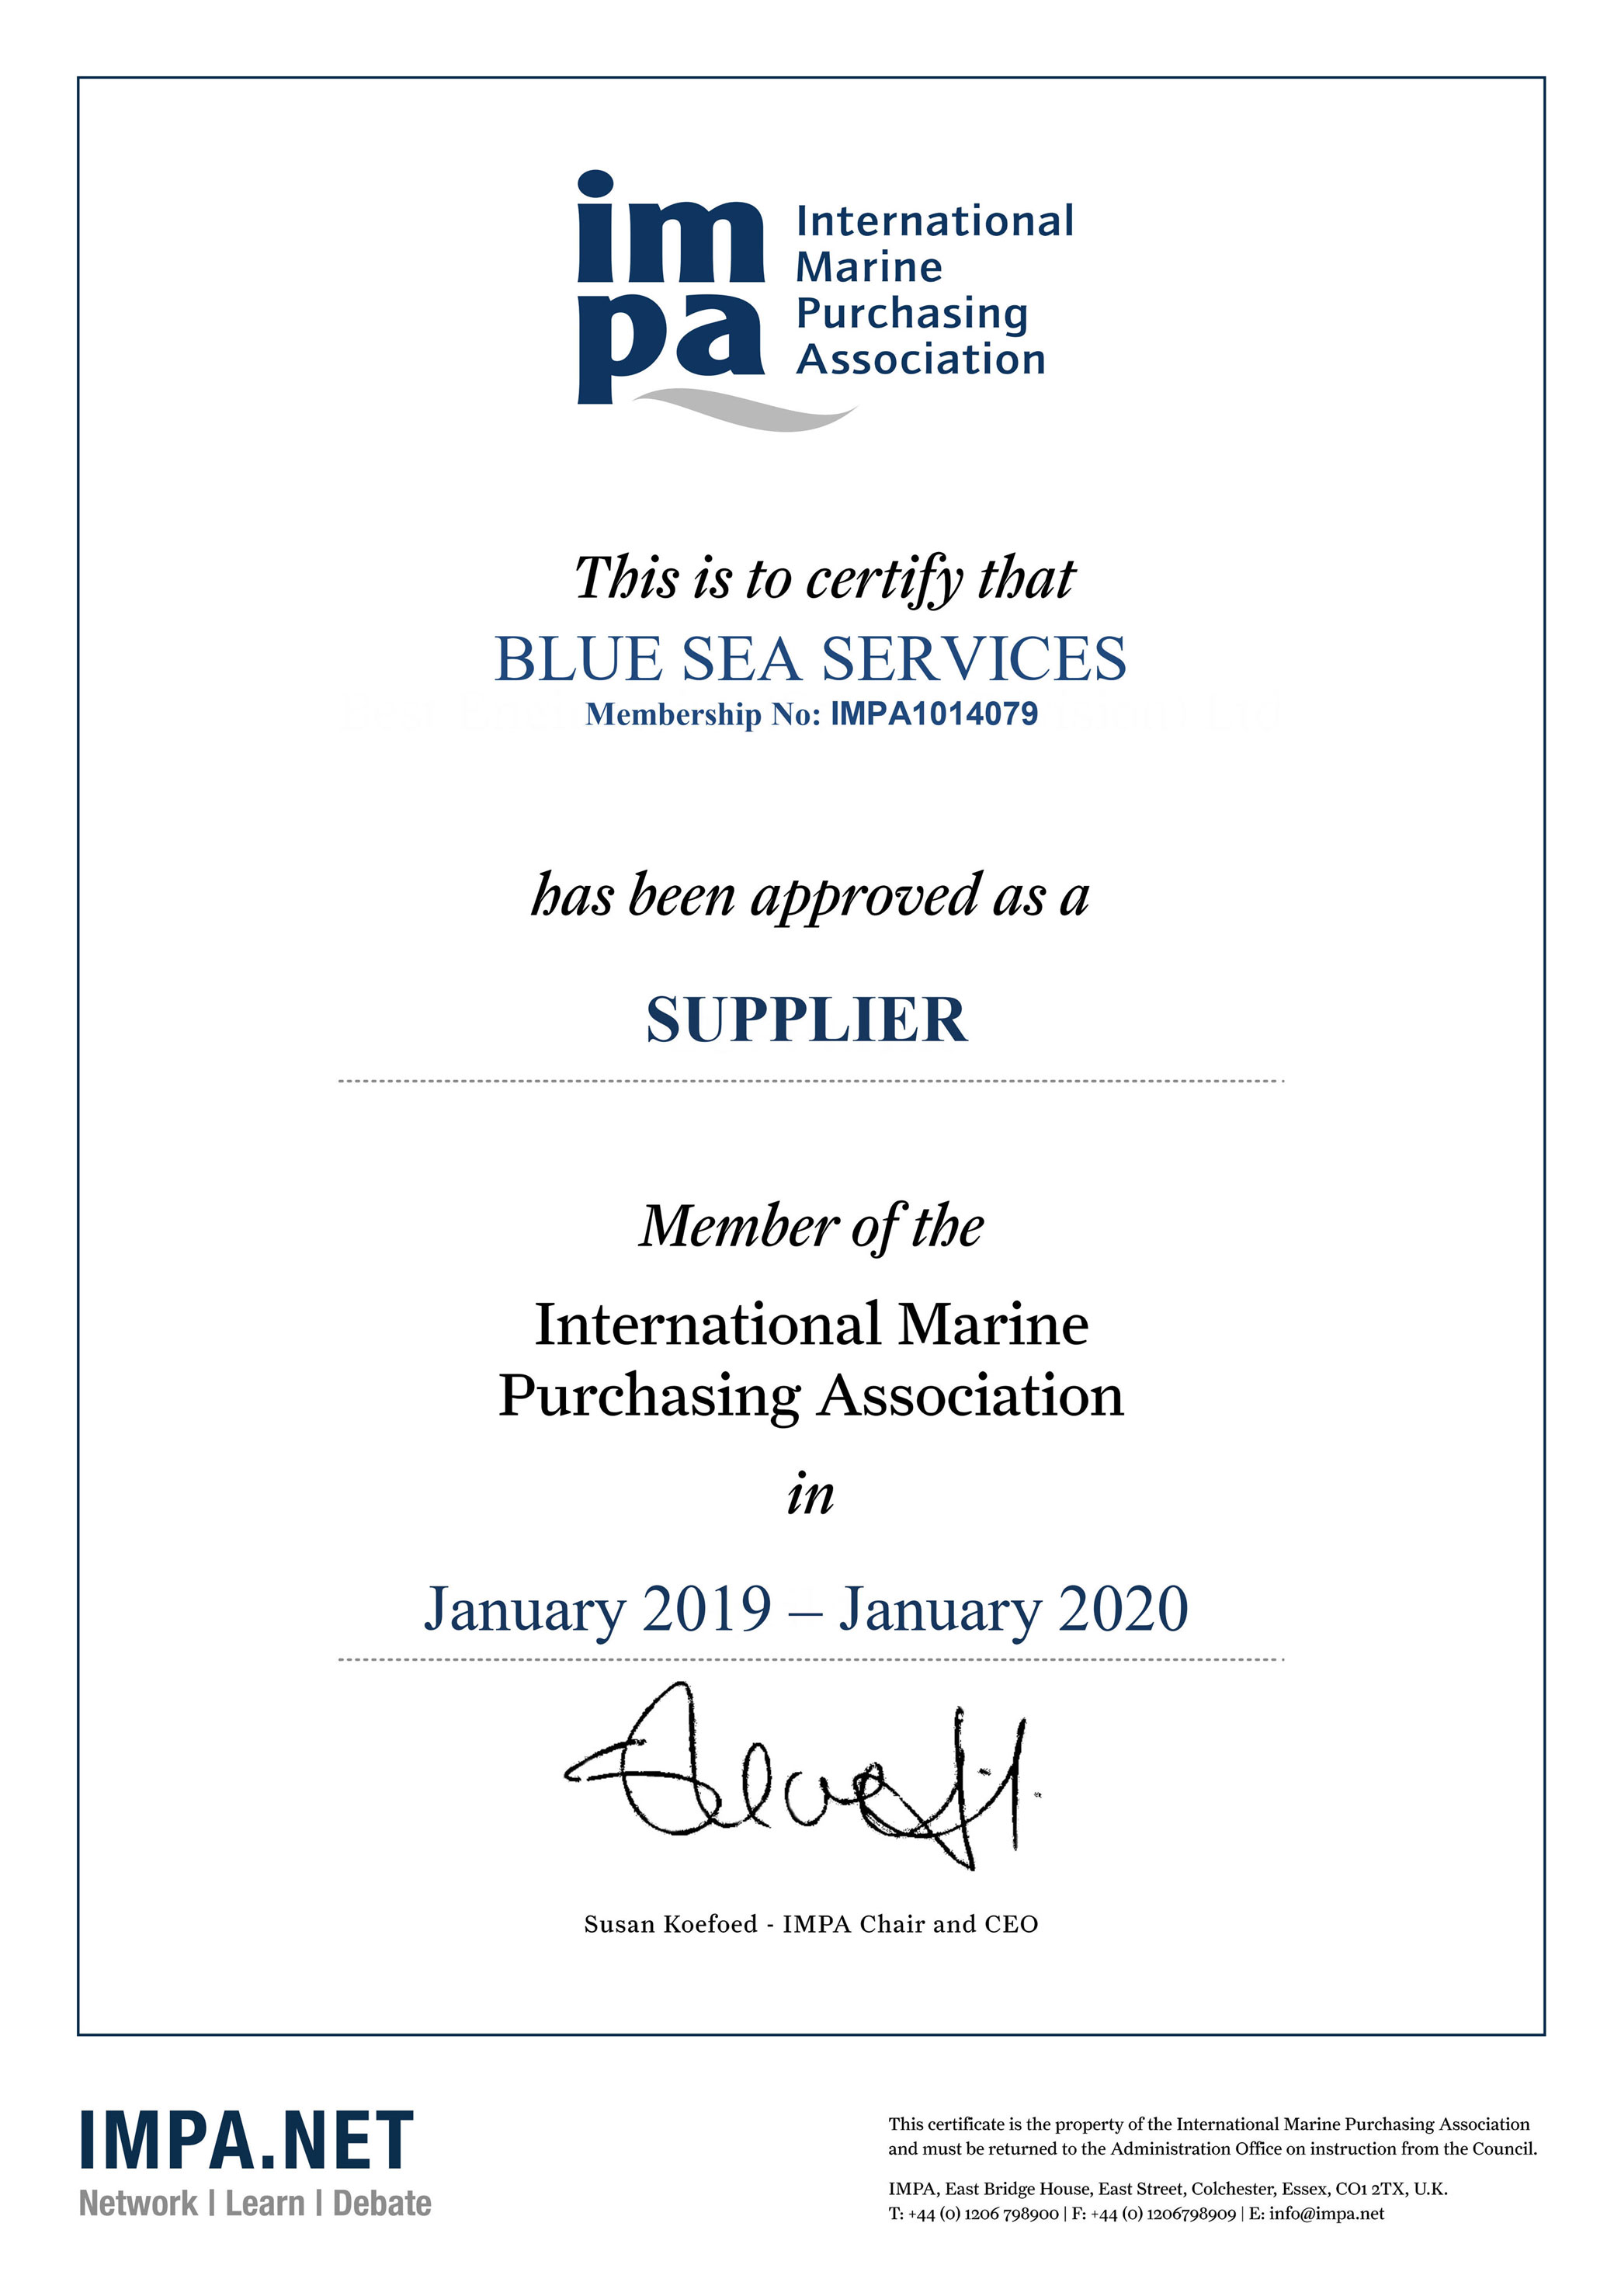 BLUE SEA SERVICES Membership Certificate